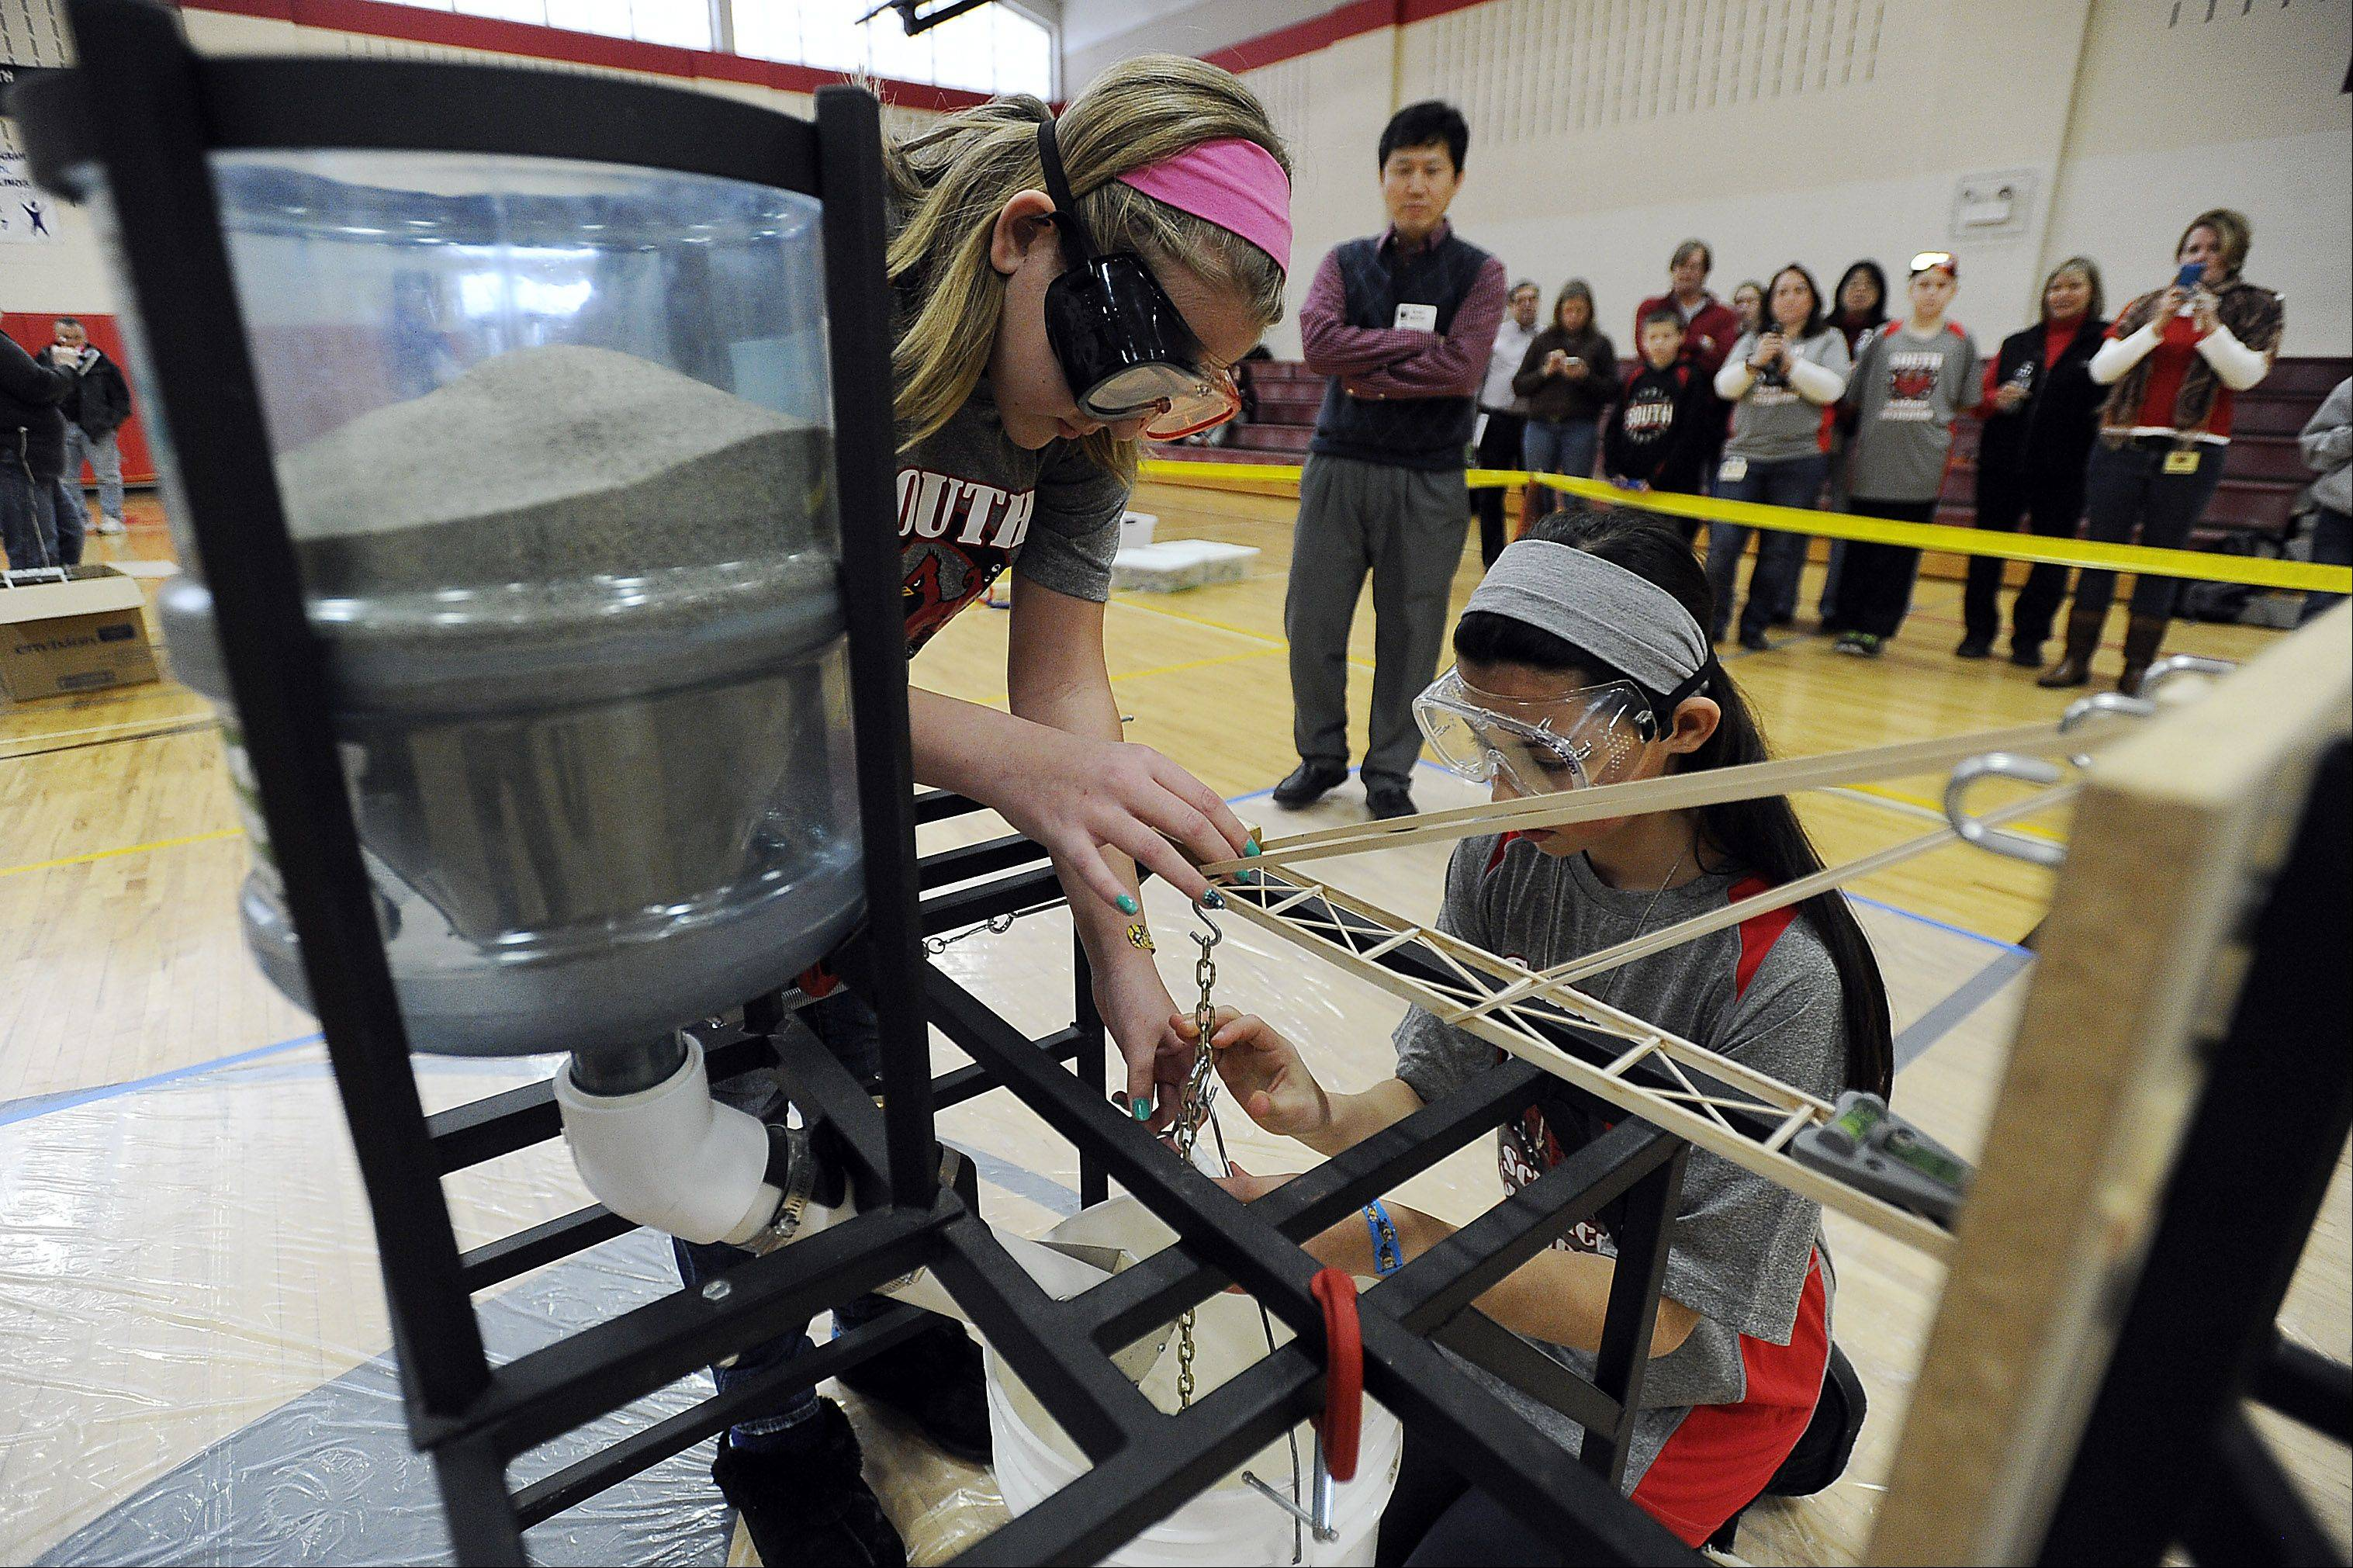 Avery Hepko, 11, left, and partner Elizabeth Ibata, 12, of South Middle School in Arlington Heights hook up their wooden boom structure device to a bucket that will fill with sand. Supervisor Yongjian Liu watches carefully as the girls prepare their device at a Science Olympiad invitational. The boom held more than 22 pounds of sand.